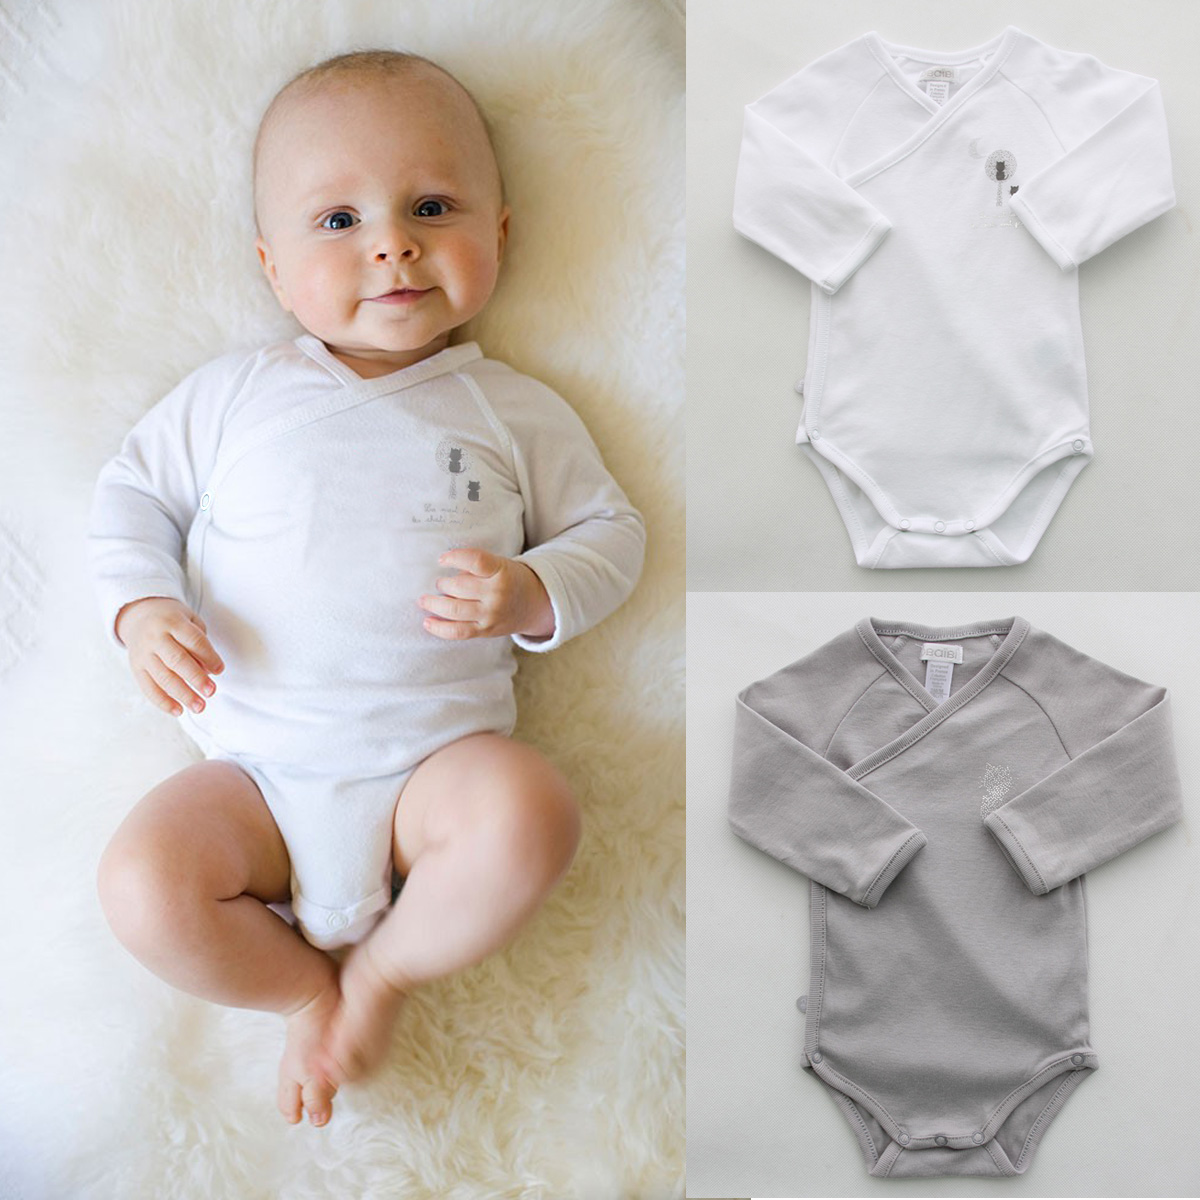 Baby clothes for newborn